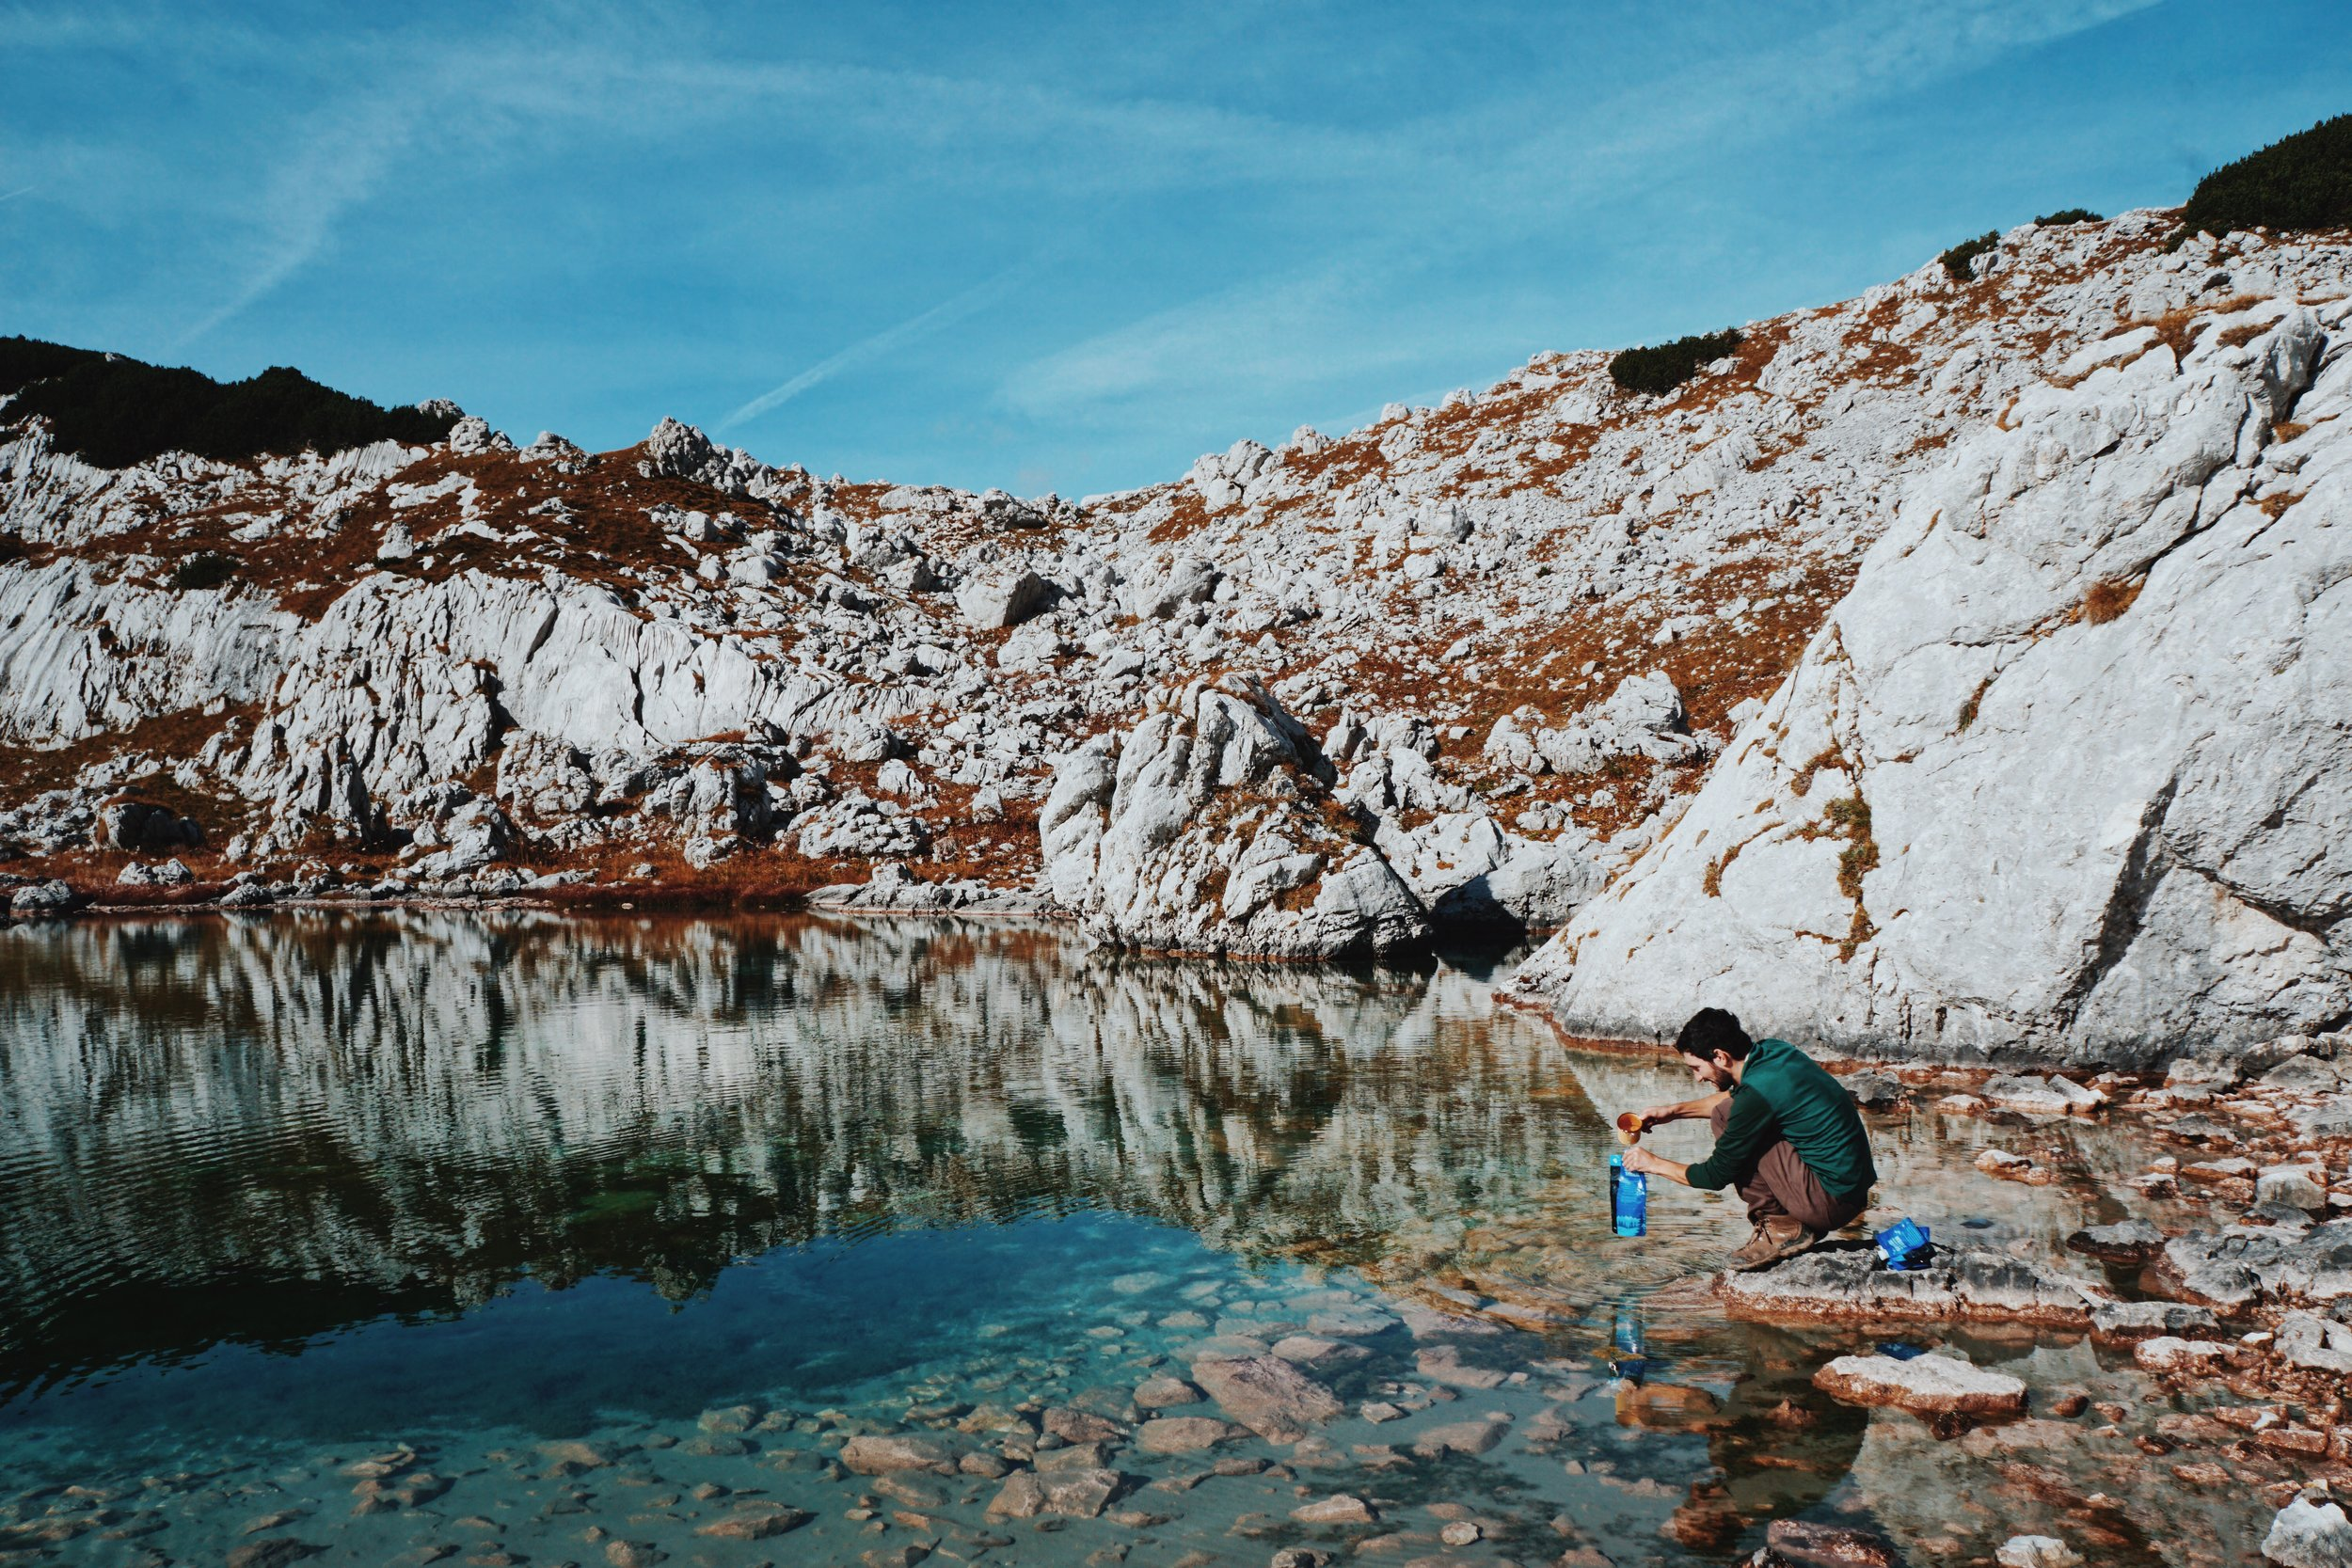 Best perk about our Sawyer Squeeze Filter is getting to drink from places like this (Triglav National Park, Slovenia).